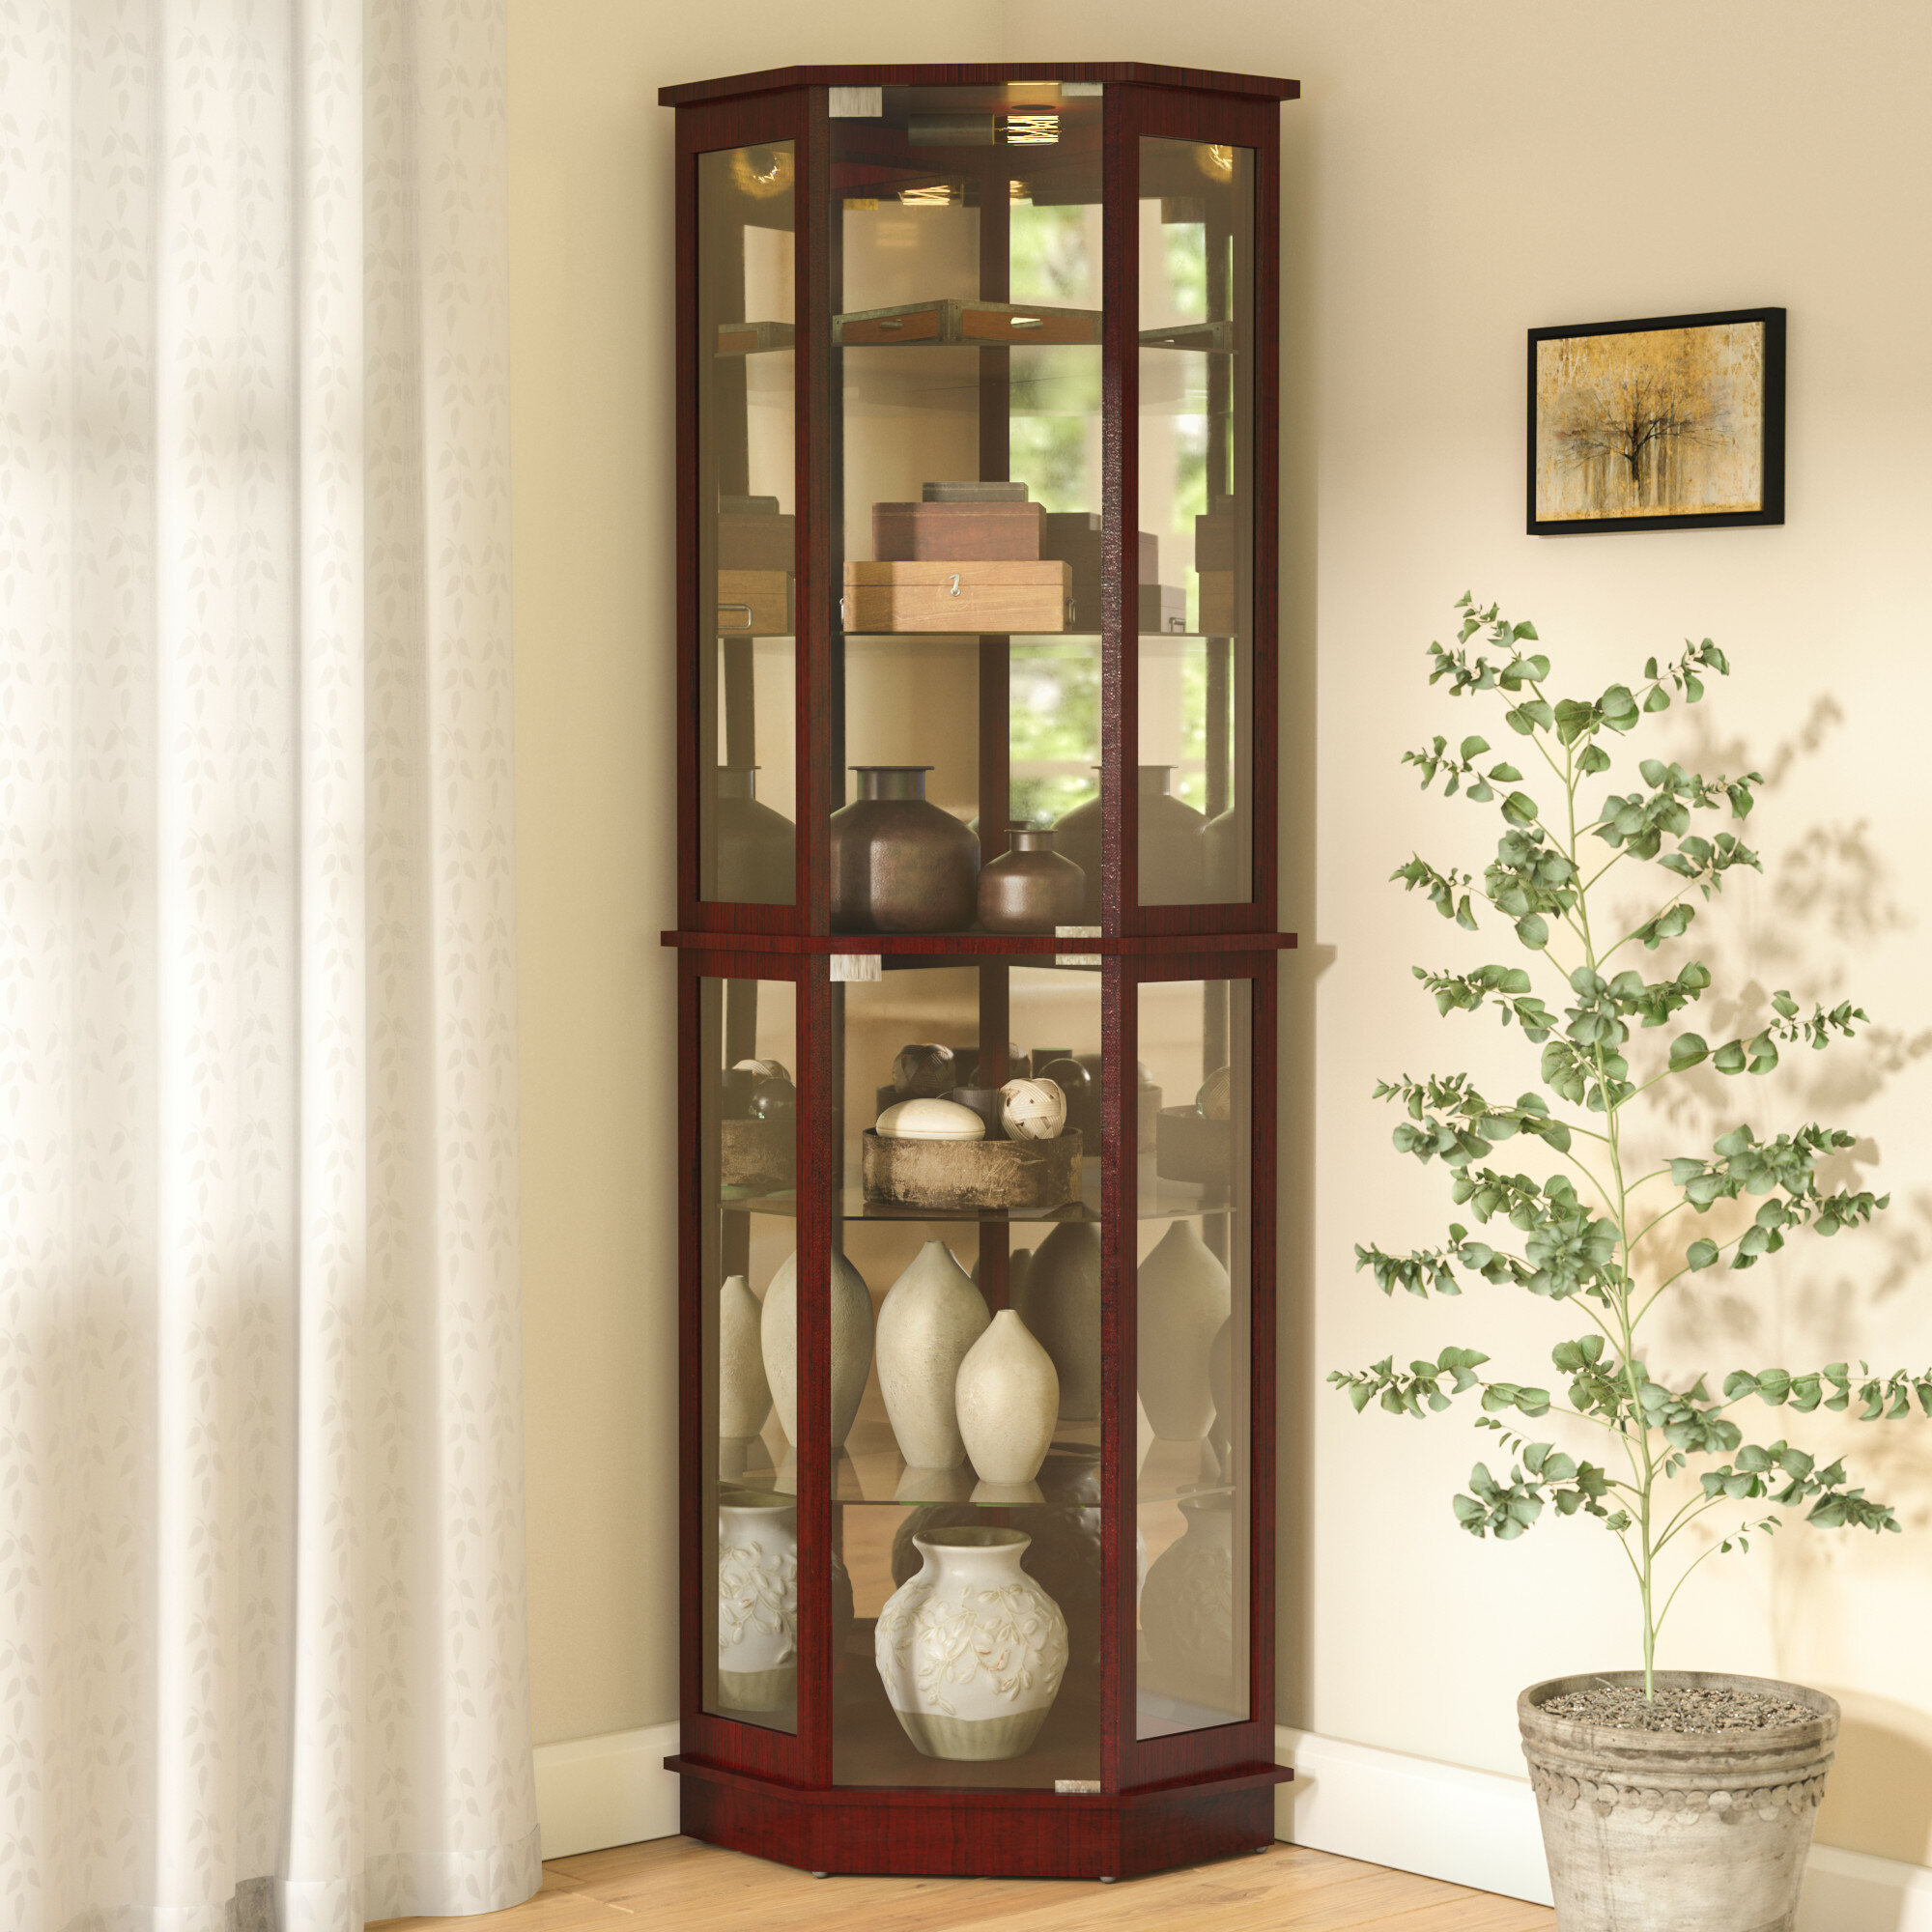 Ordinaire Andover Mills Biali Lighted Corner Curio Cabinet U0026 Reviews | Wayfair